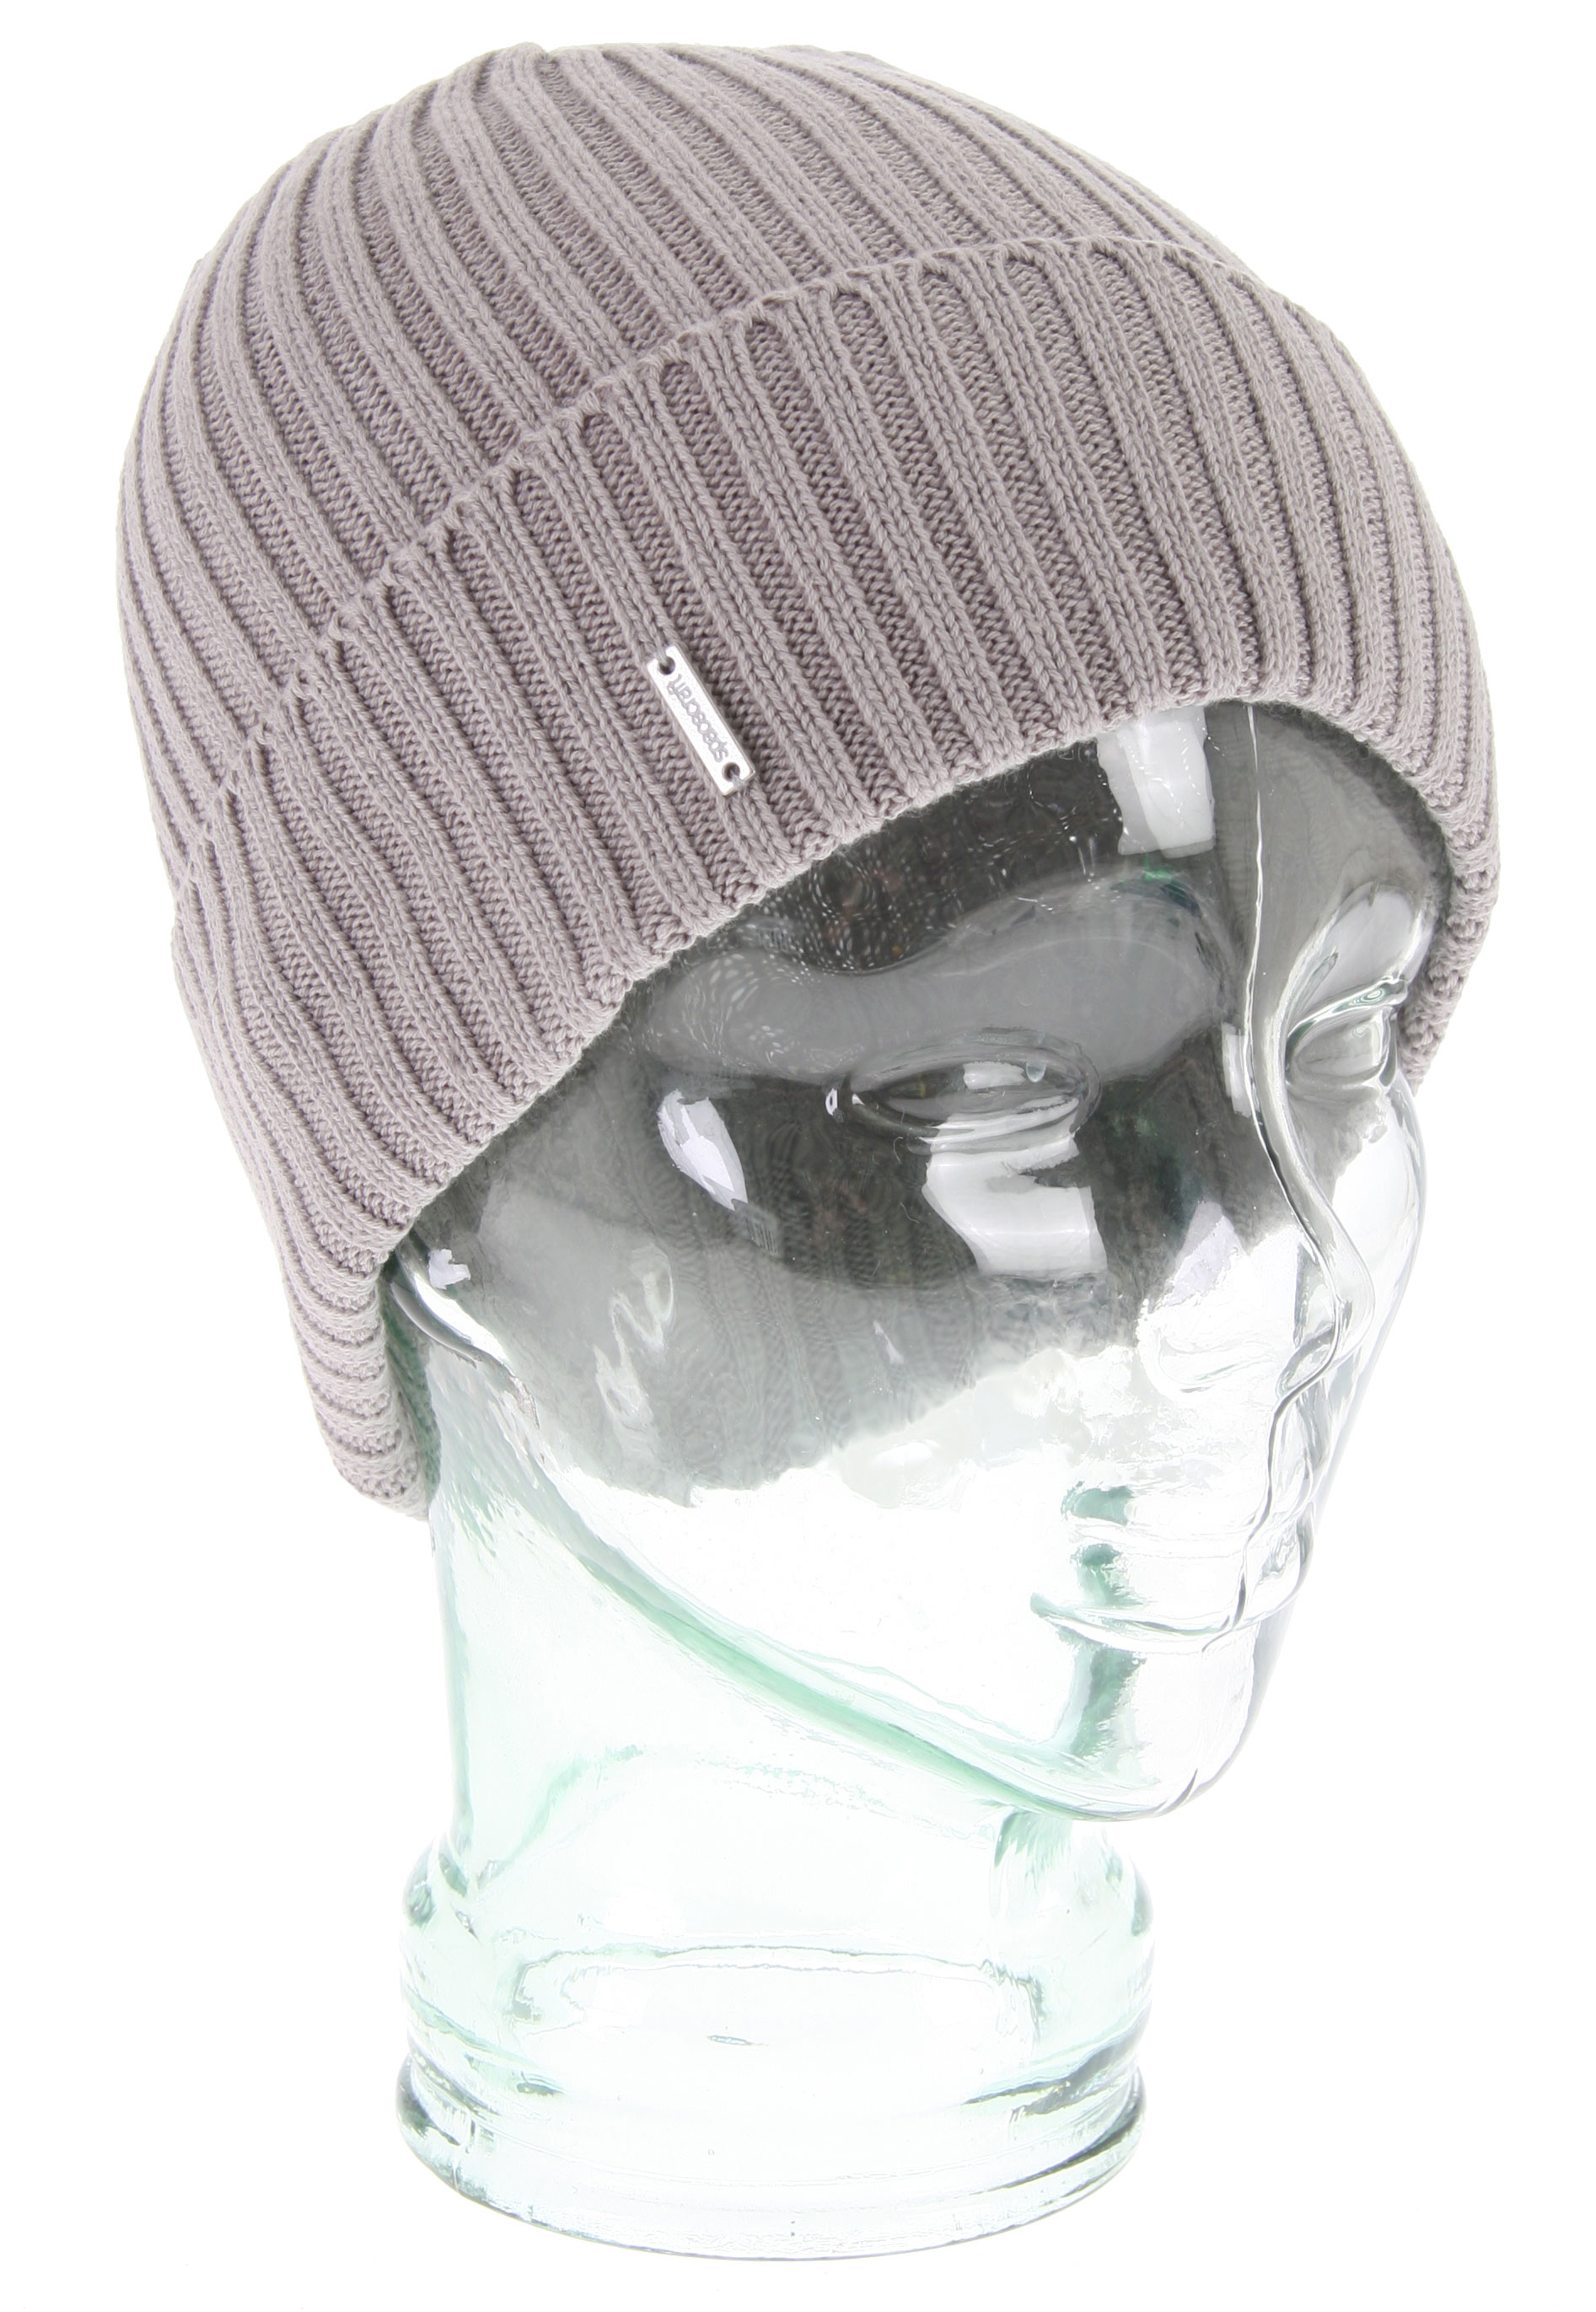 The Spacecraft The Watchman Light Beanie is a Light Weight Beanie with Thick Fold & Metal Wordmark Rive.Key Features of the Spacecraft The Watchman Light Beanie: Light Weight Beanie with Thick Fold & Metal Wordmark Rivet. - $11.96